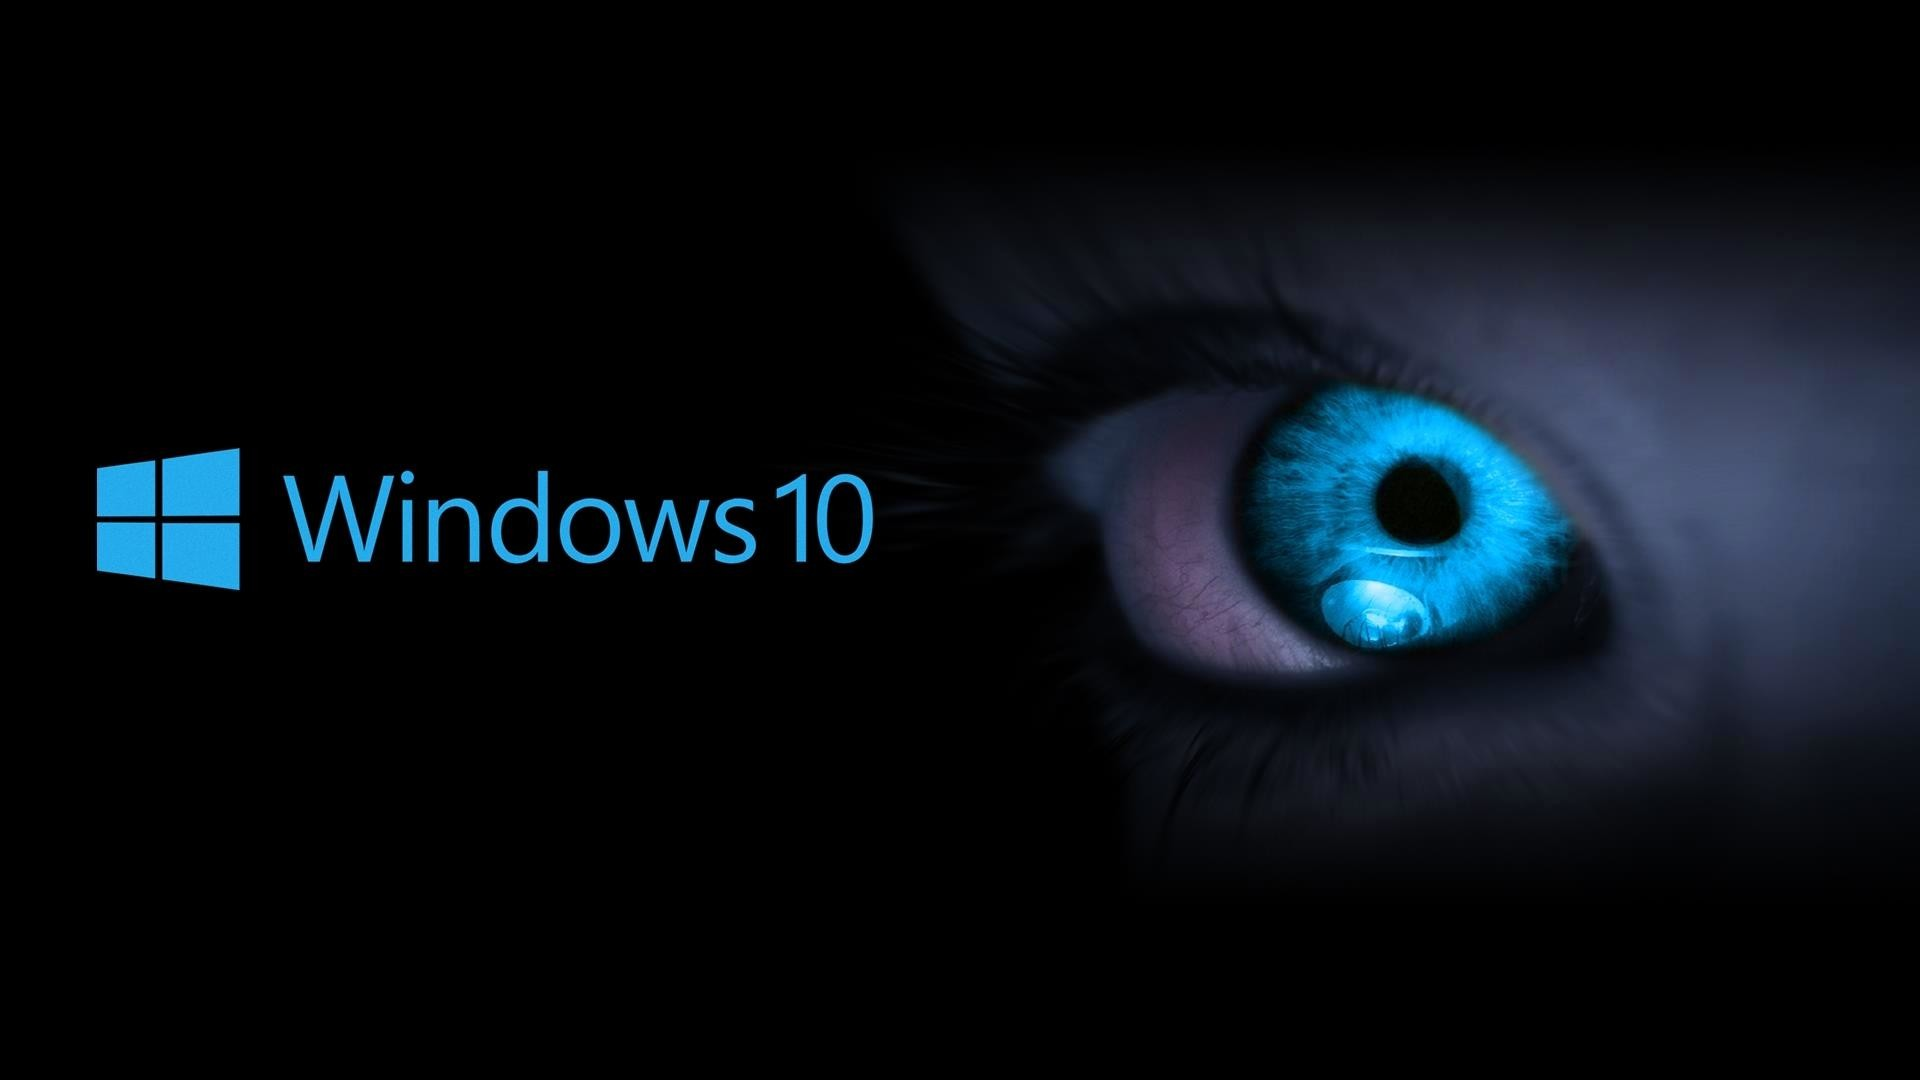 Windows 10 Wallpaper Hd 3d Wallpapers Wide for HD Wallpaper Desktop  px 47.62 KB